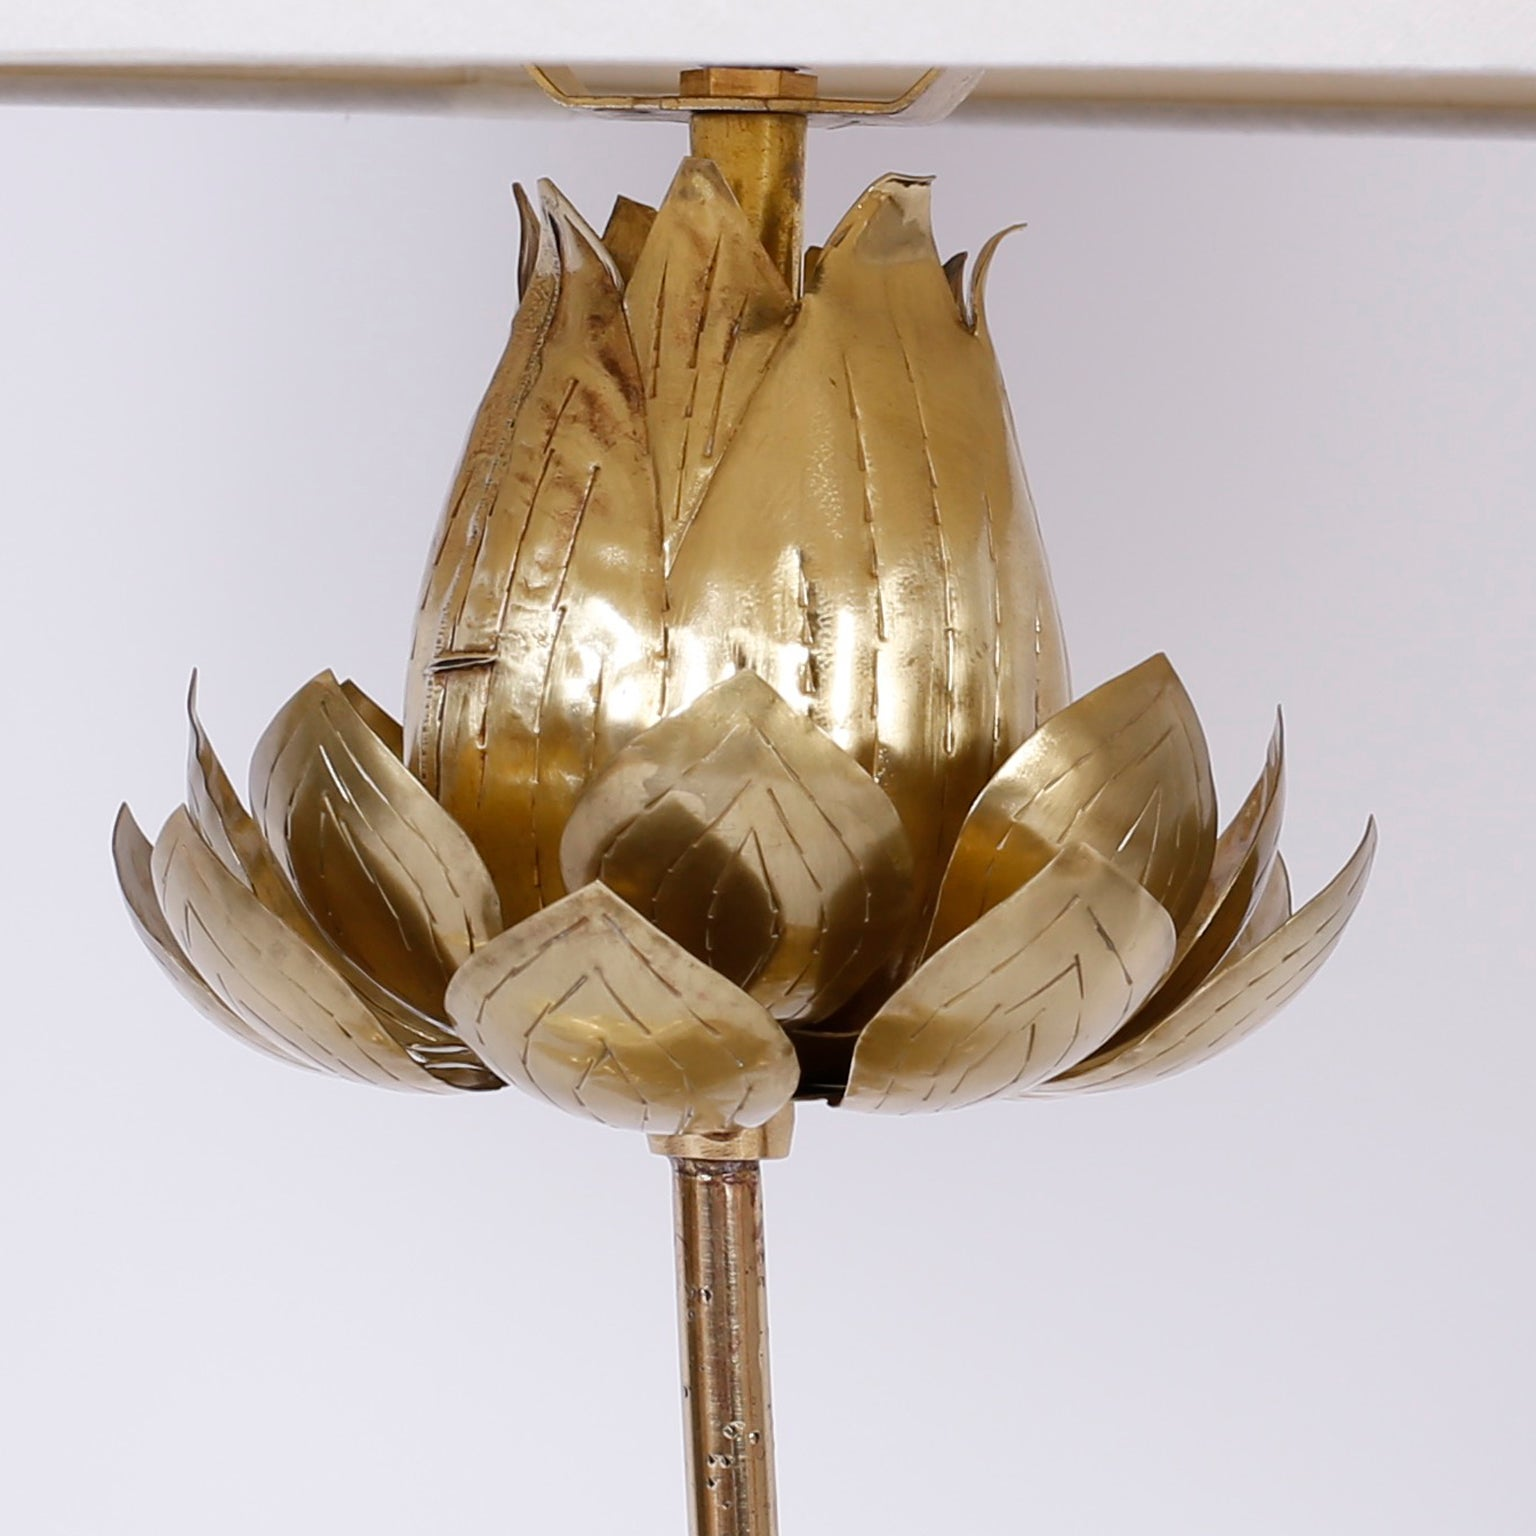 Tropical brass lotus flower table lamp for sale at 1stdibs aloadofball Gallery